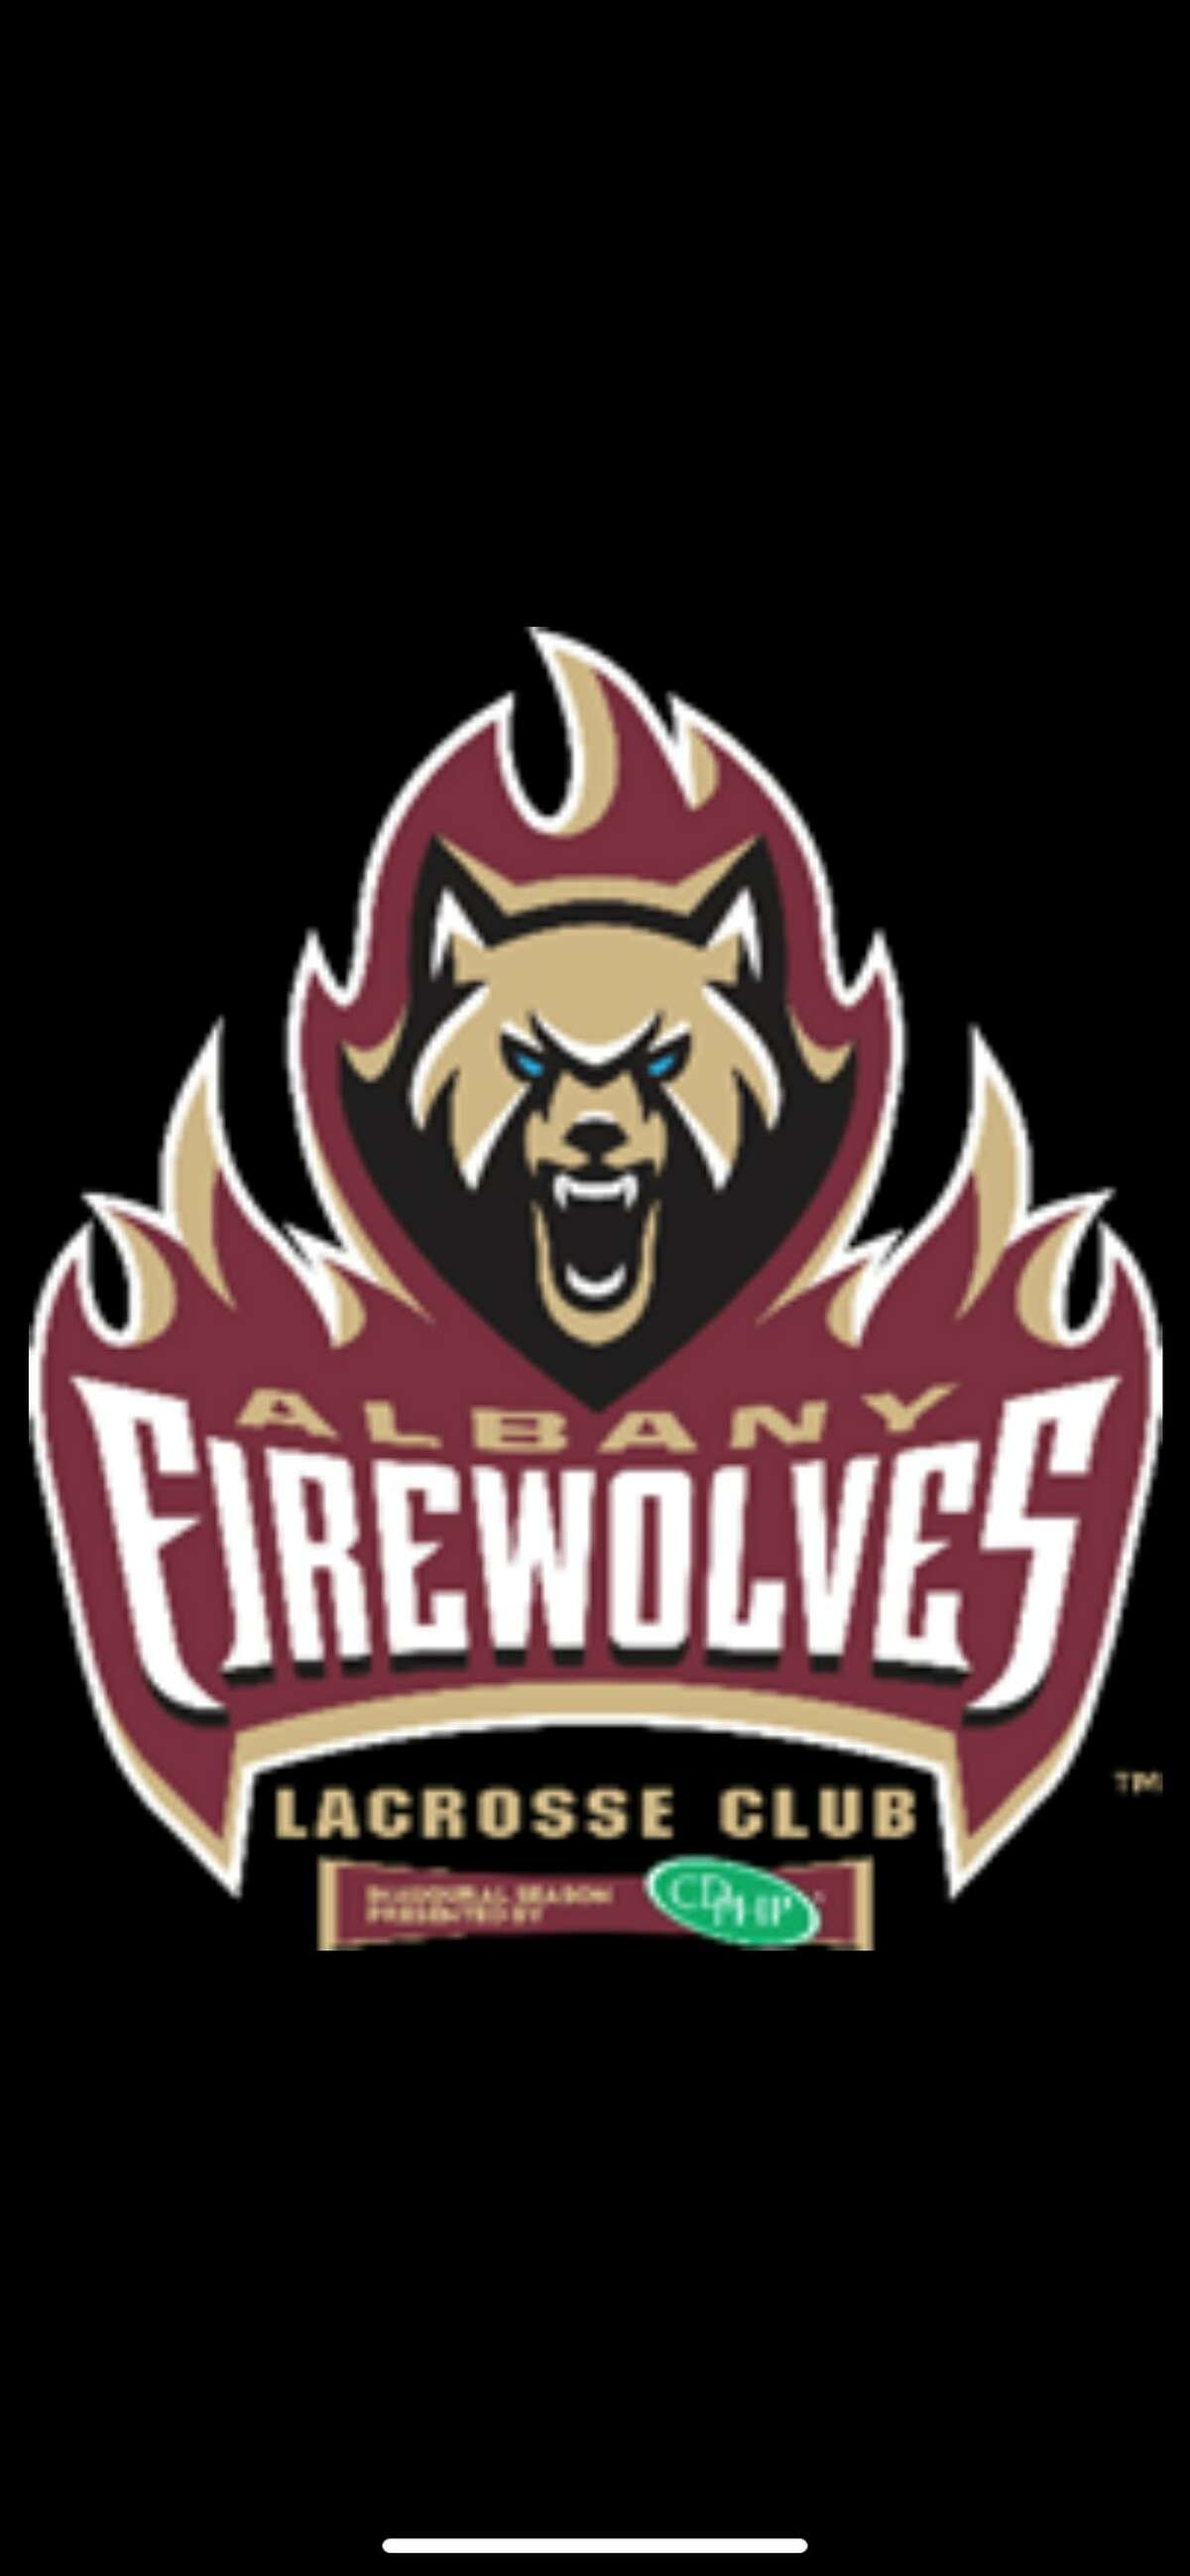 The Albany Firewolves new logo, revealed by the team on July 2, 2021. (Albany FireWolves)